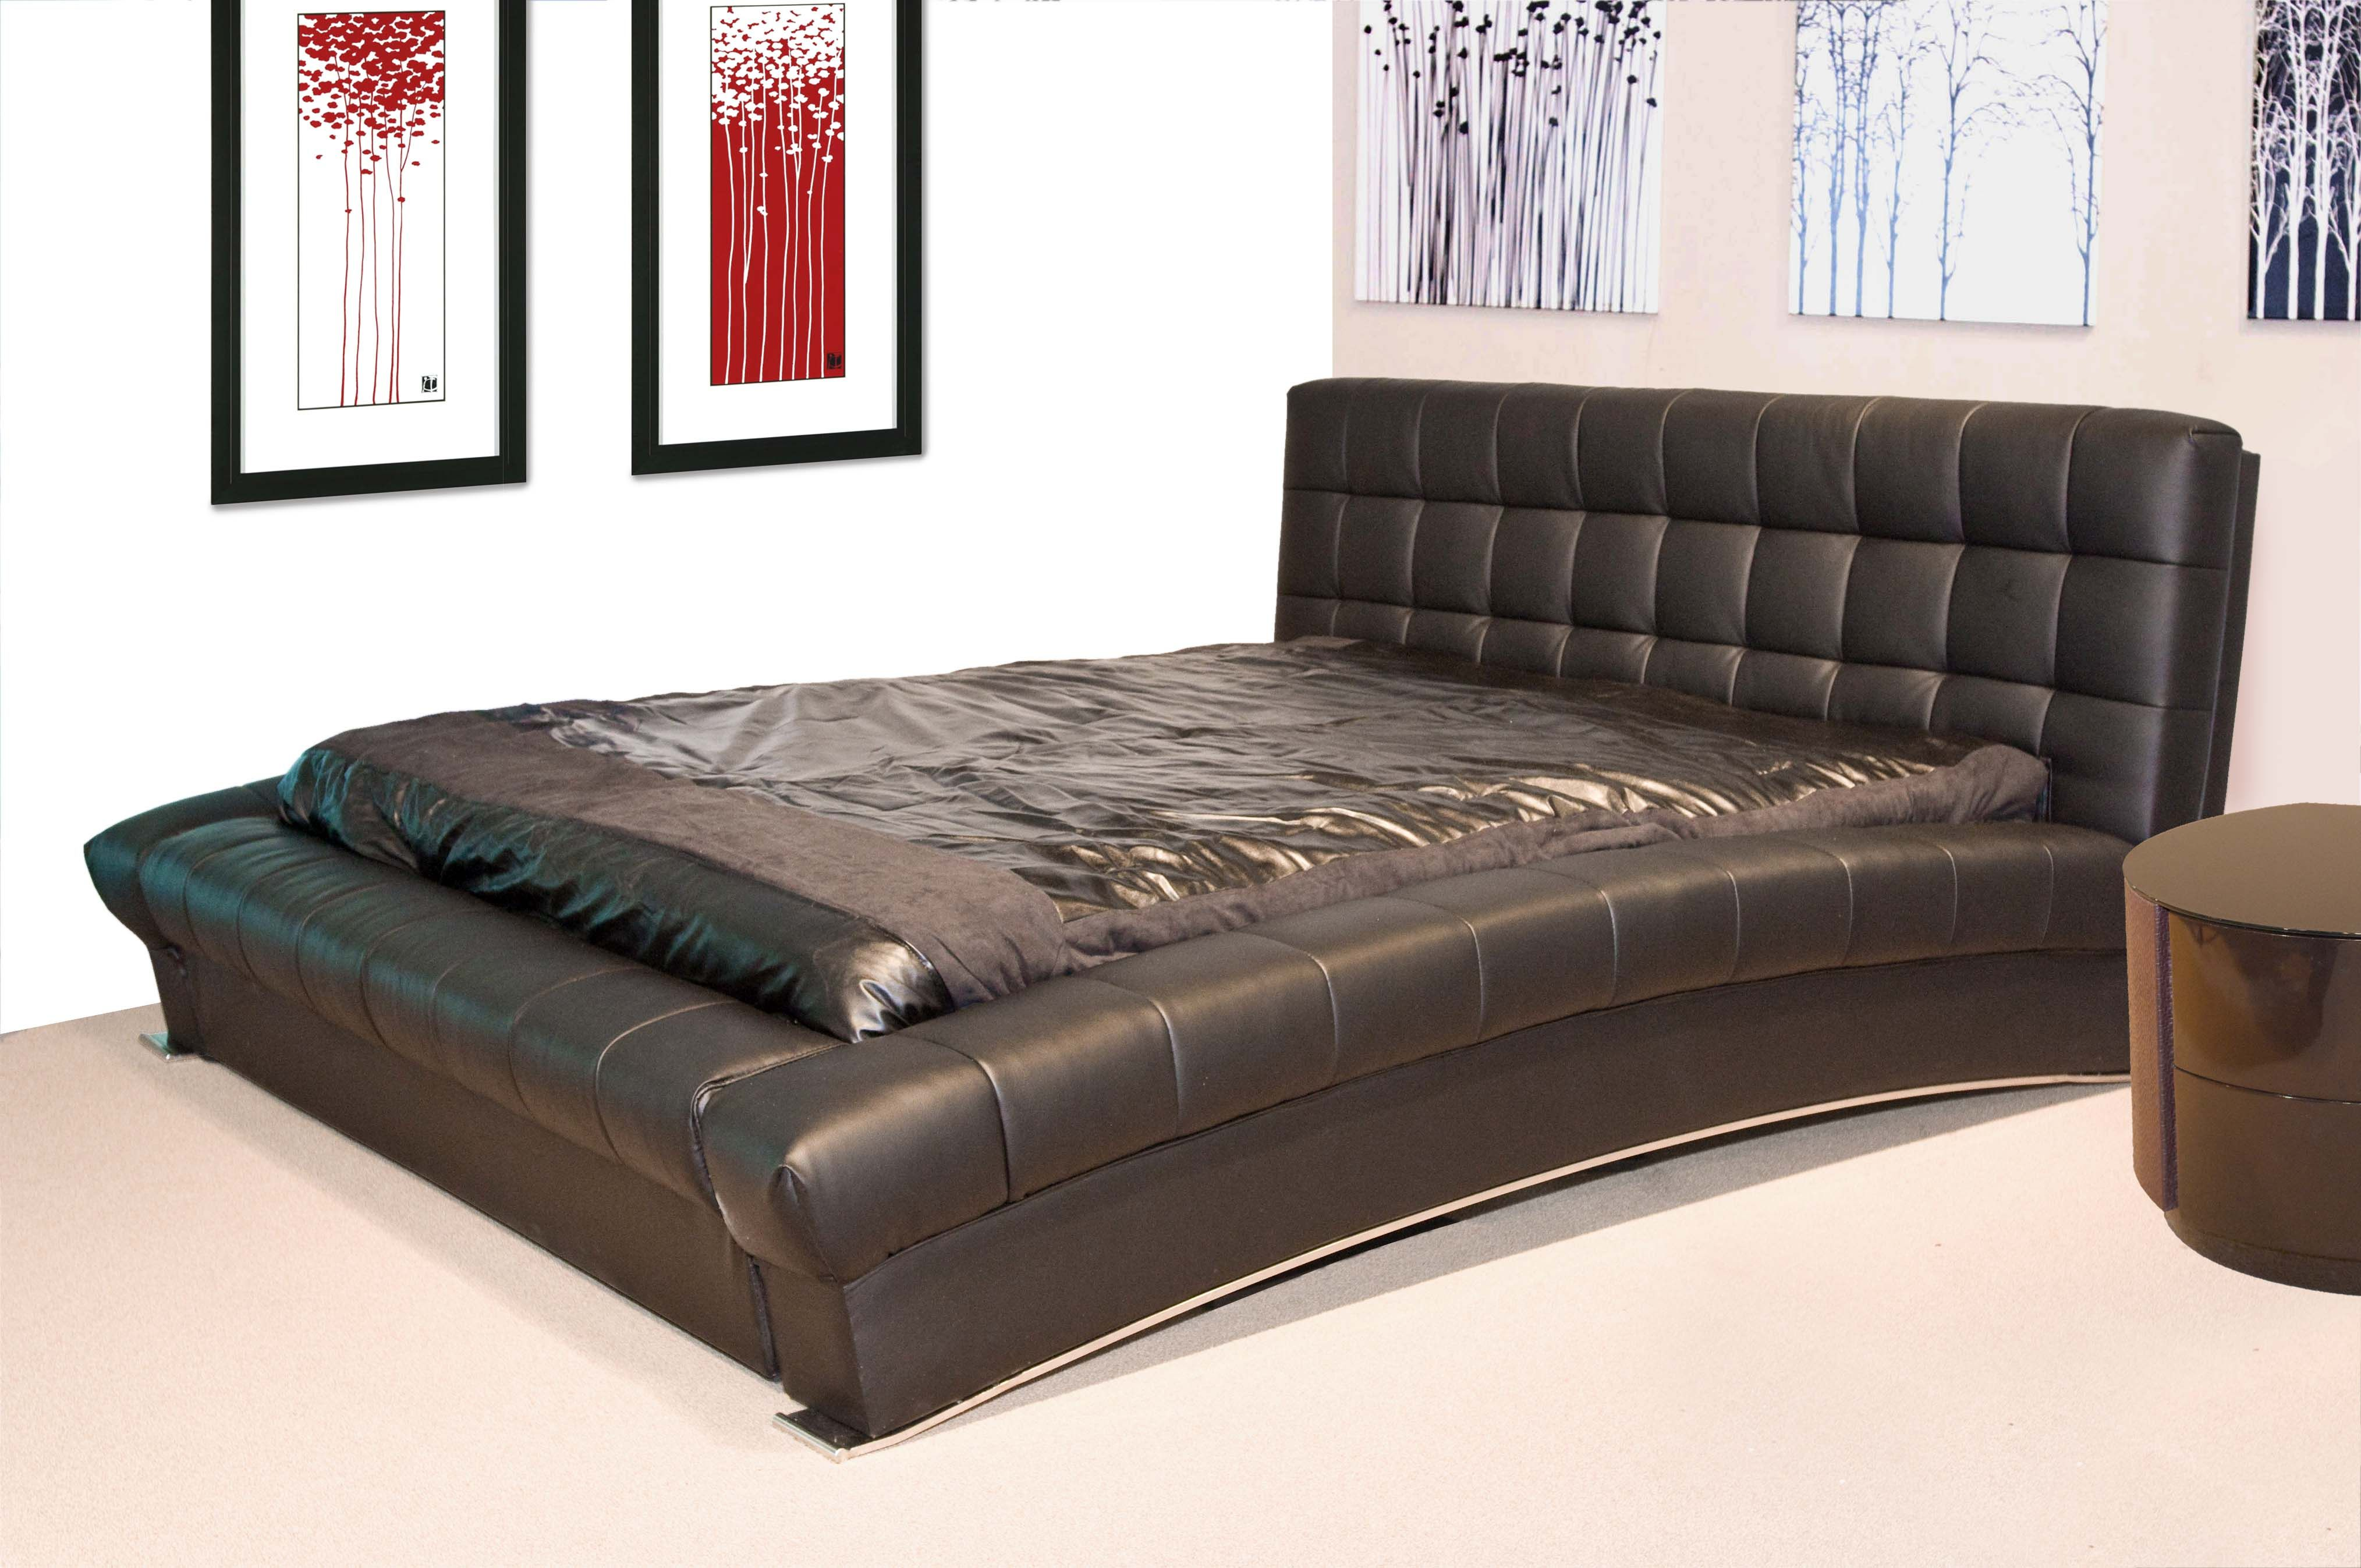 awesome cal king bed black mattress made of leather tufted. awesome cal king bed black mattress made of leather tufted  king